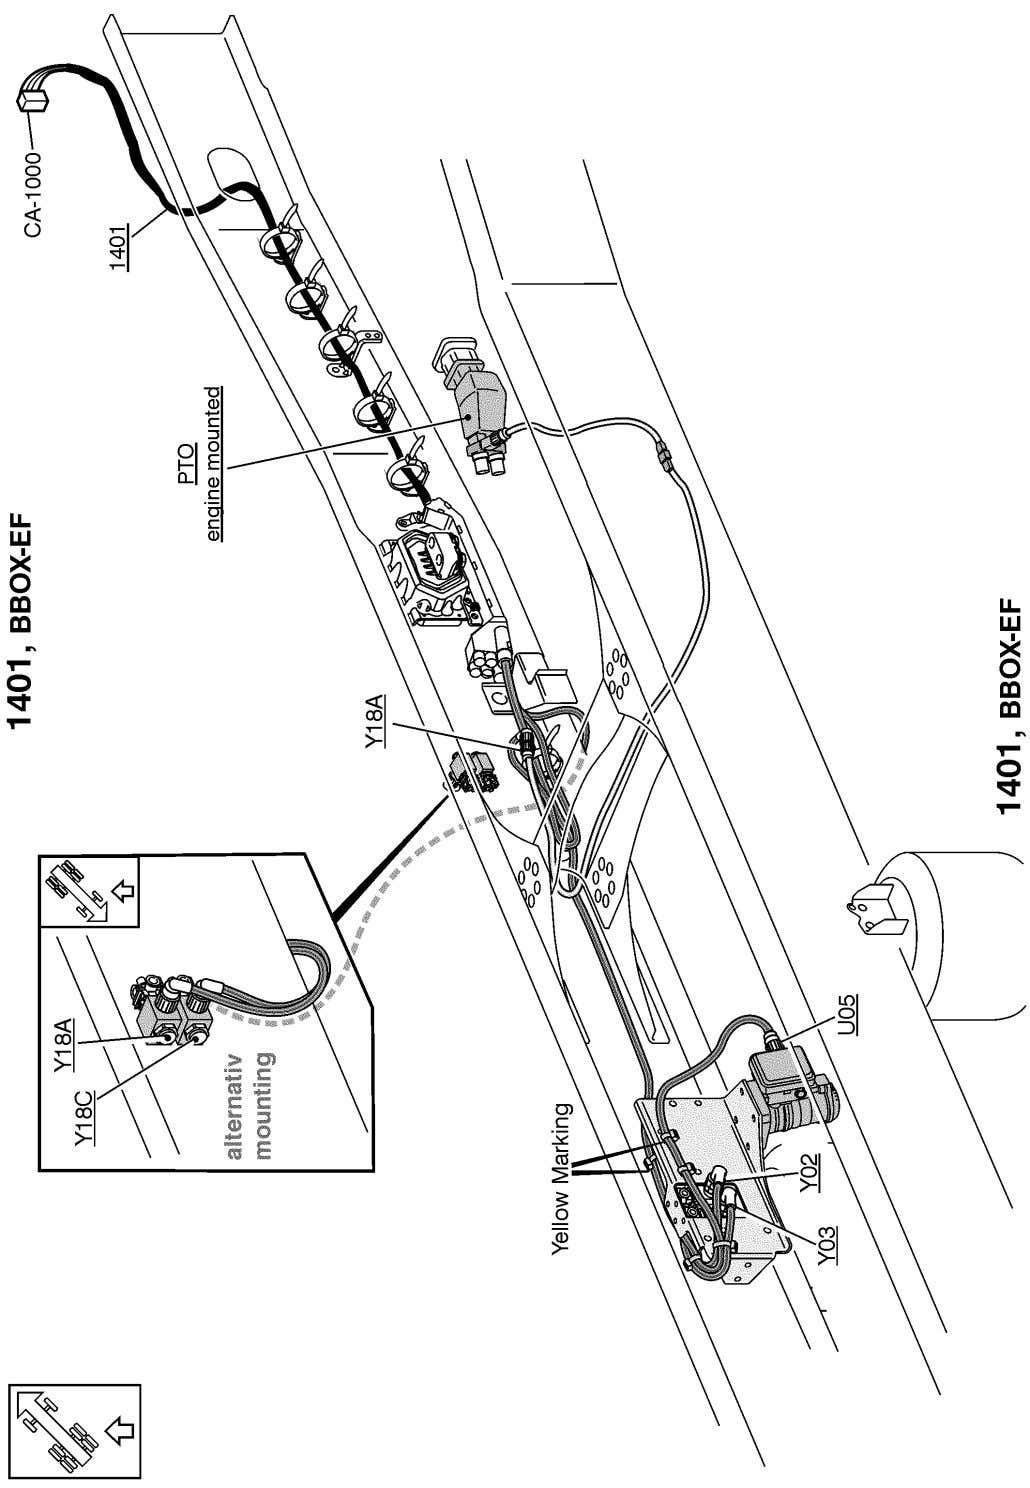 T3021585 Wiring diagram Page 195 (298)